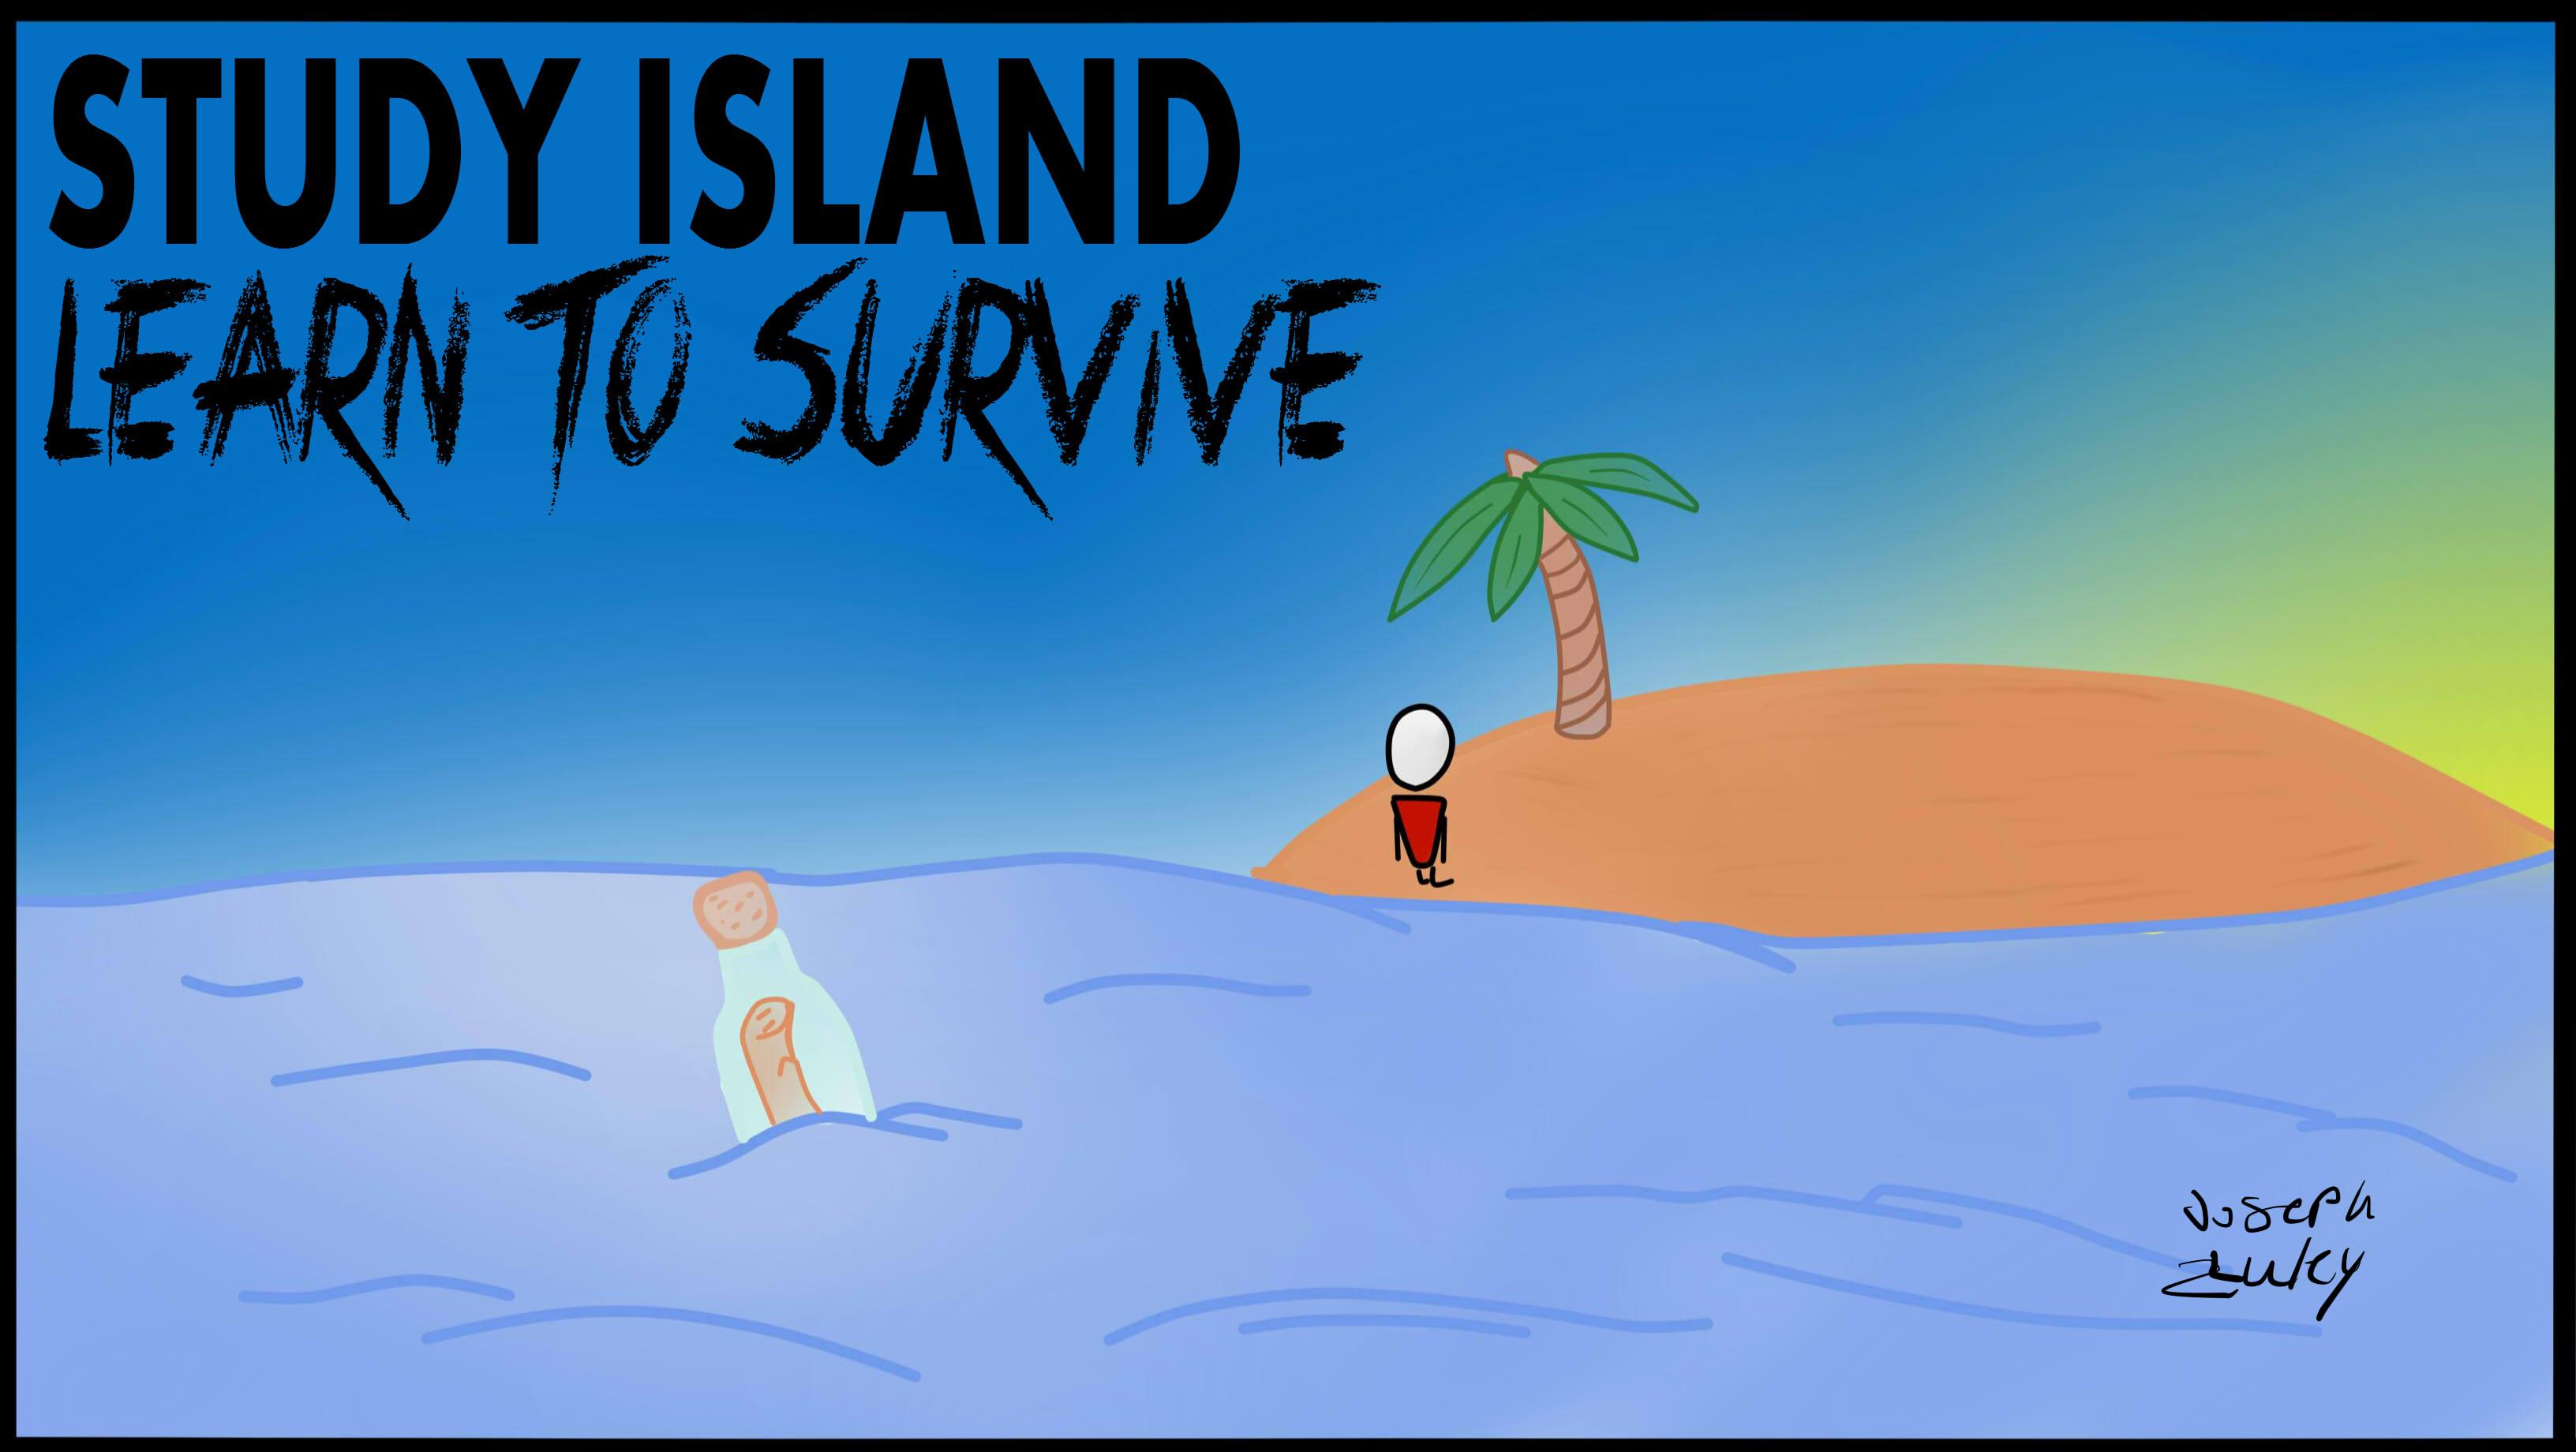 Study Island: Learn To Survive